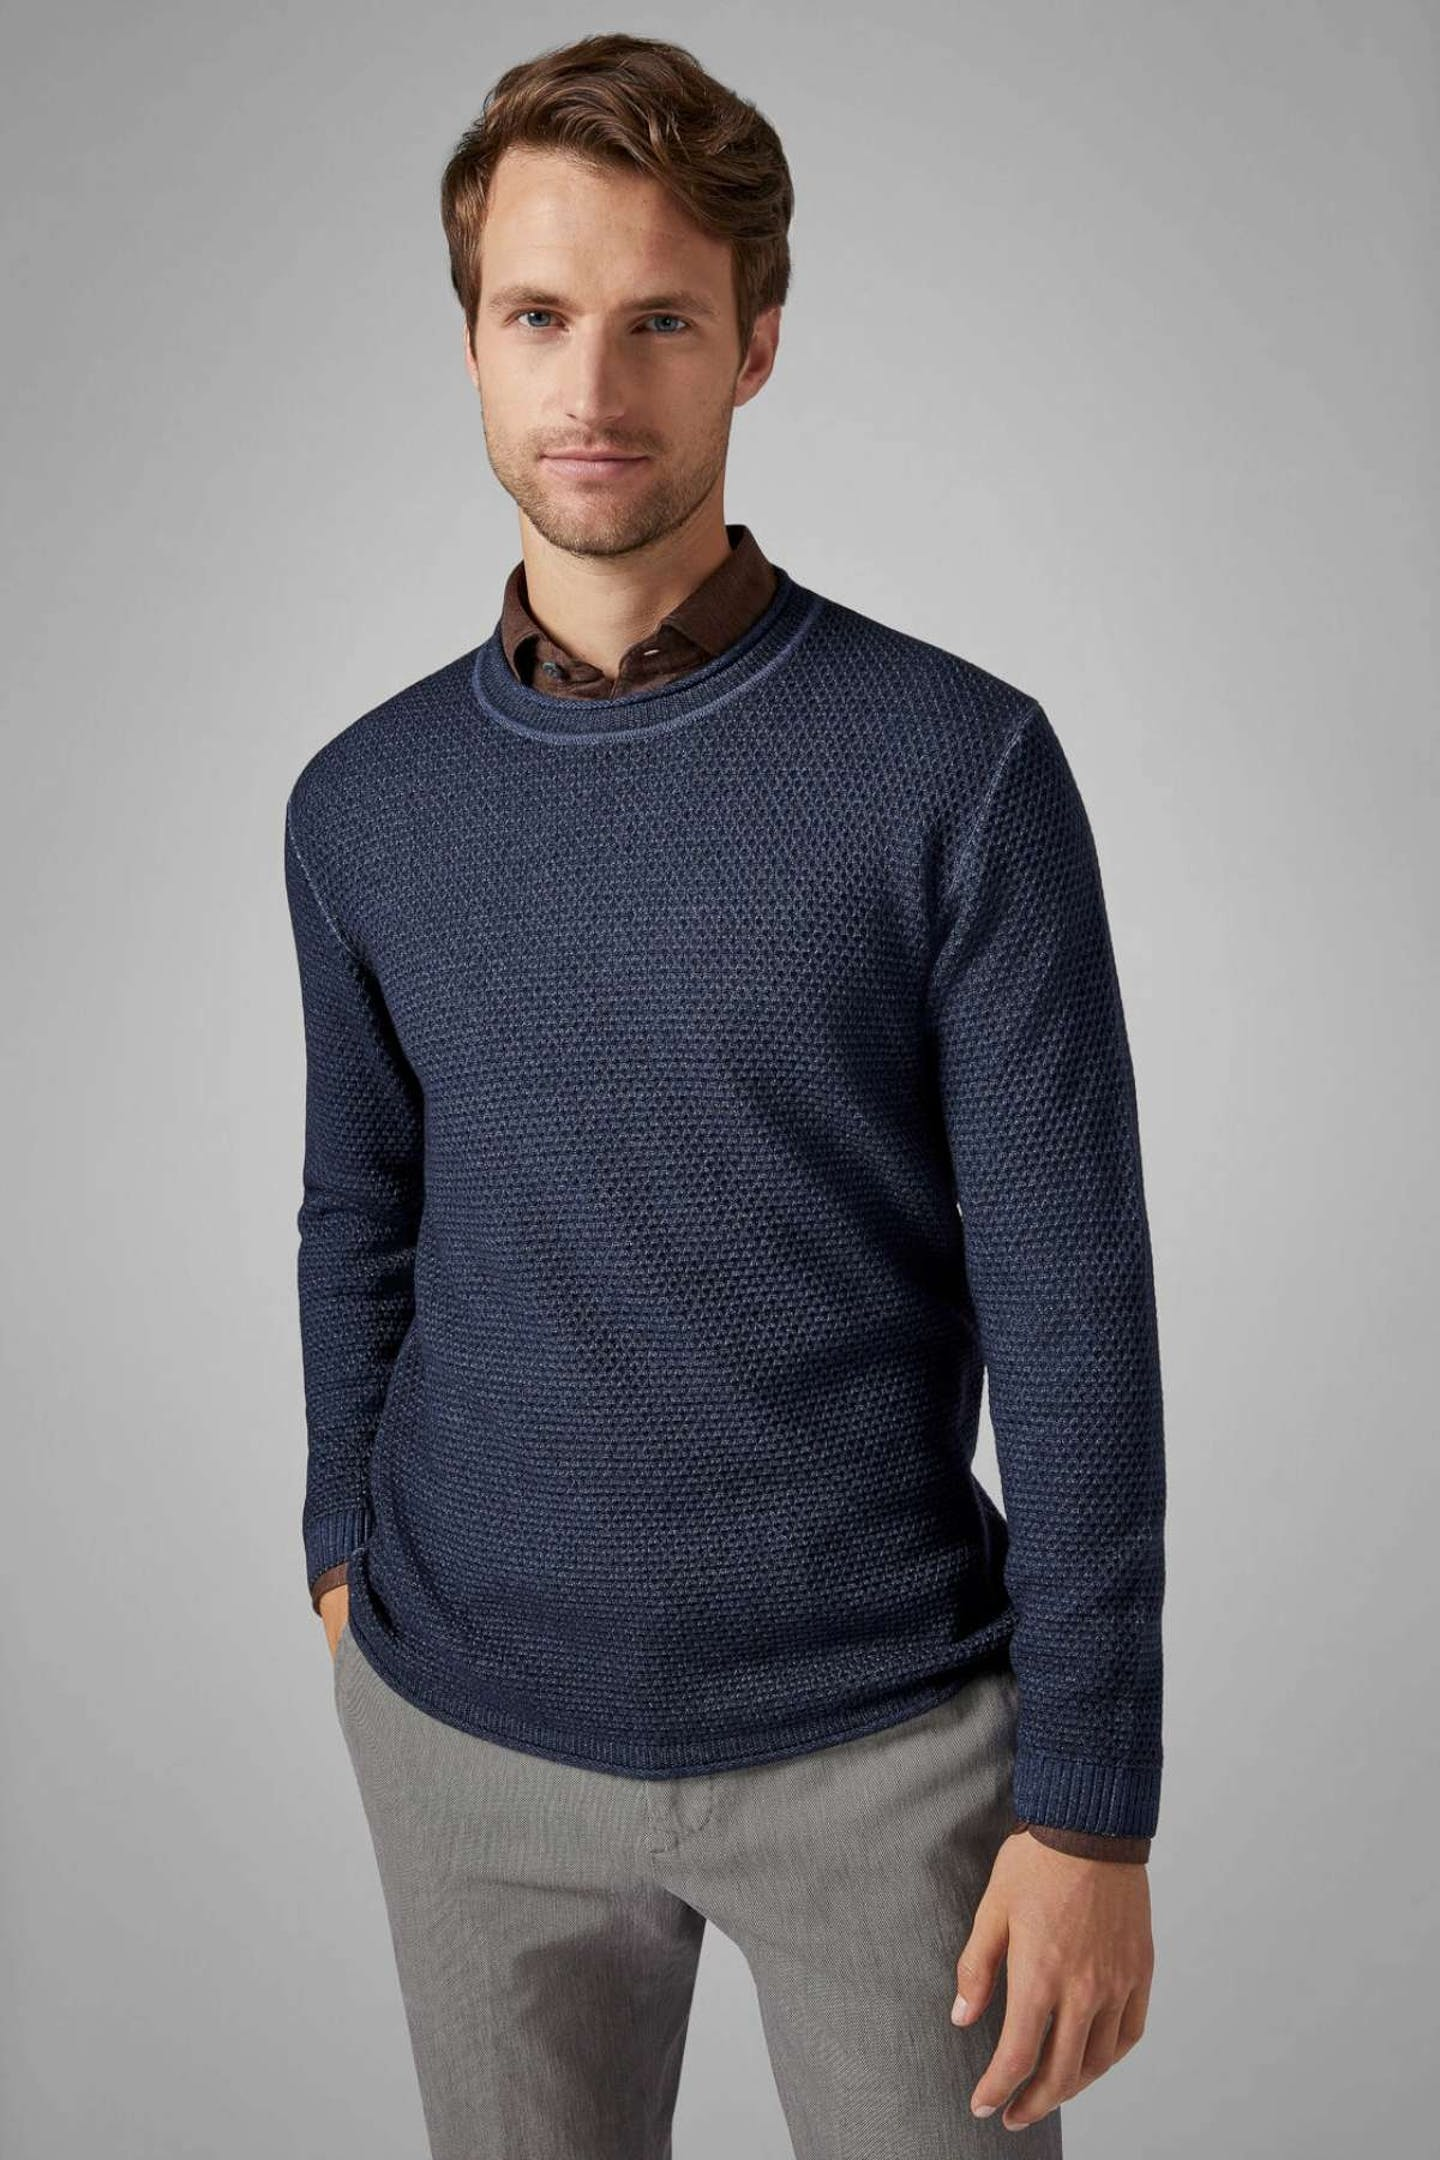 best Christmas presents for boyfriends crew-cut sweater in navy stone-washed merino wool by Boggi Milano